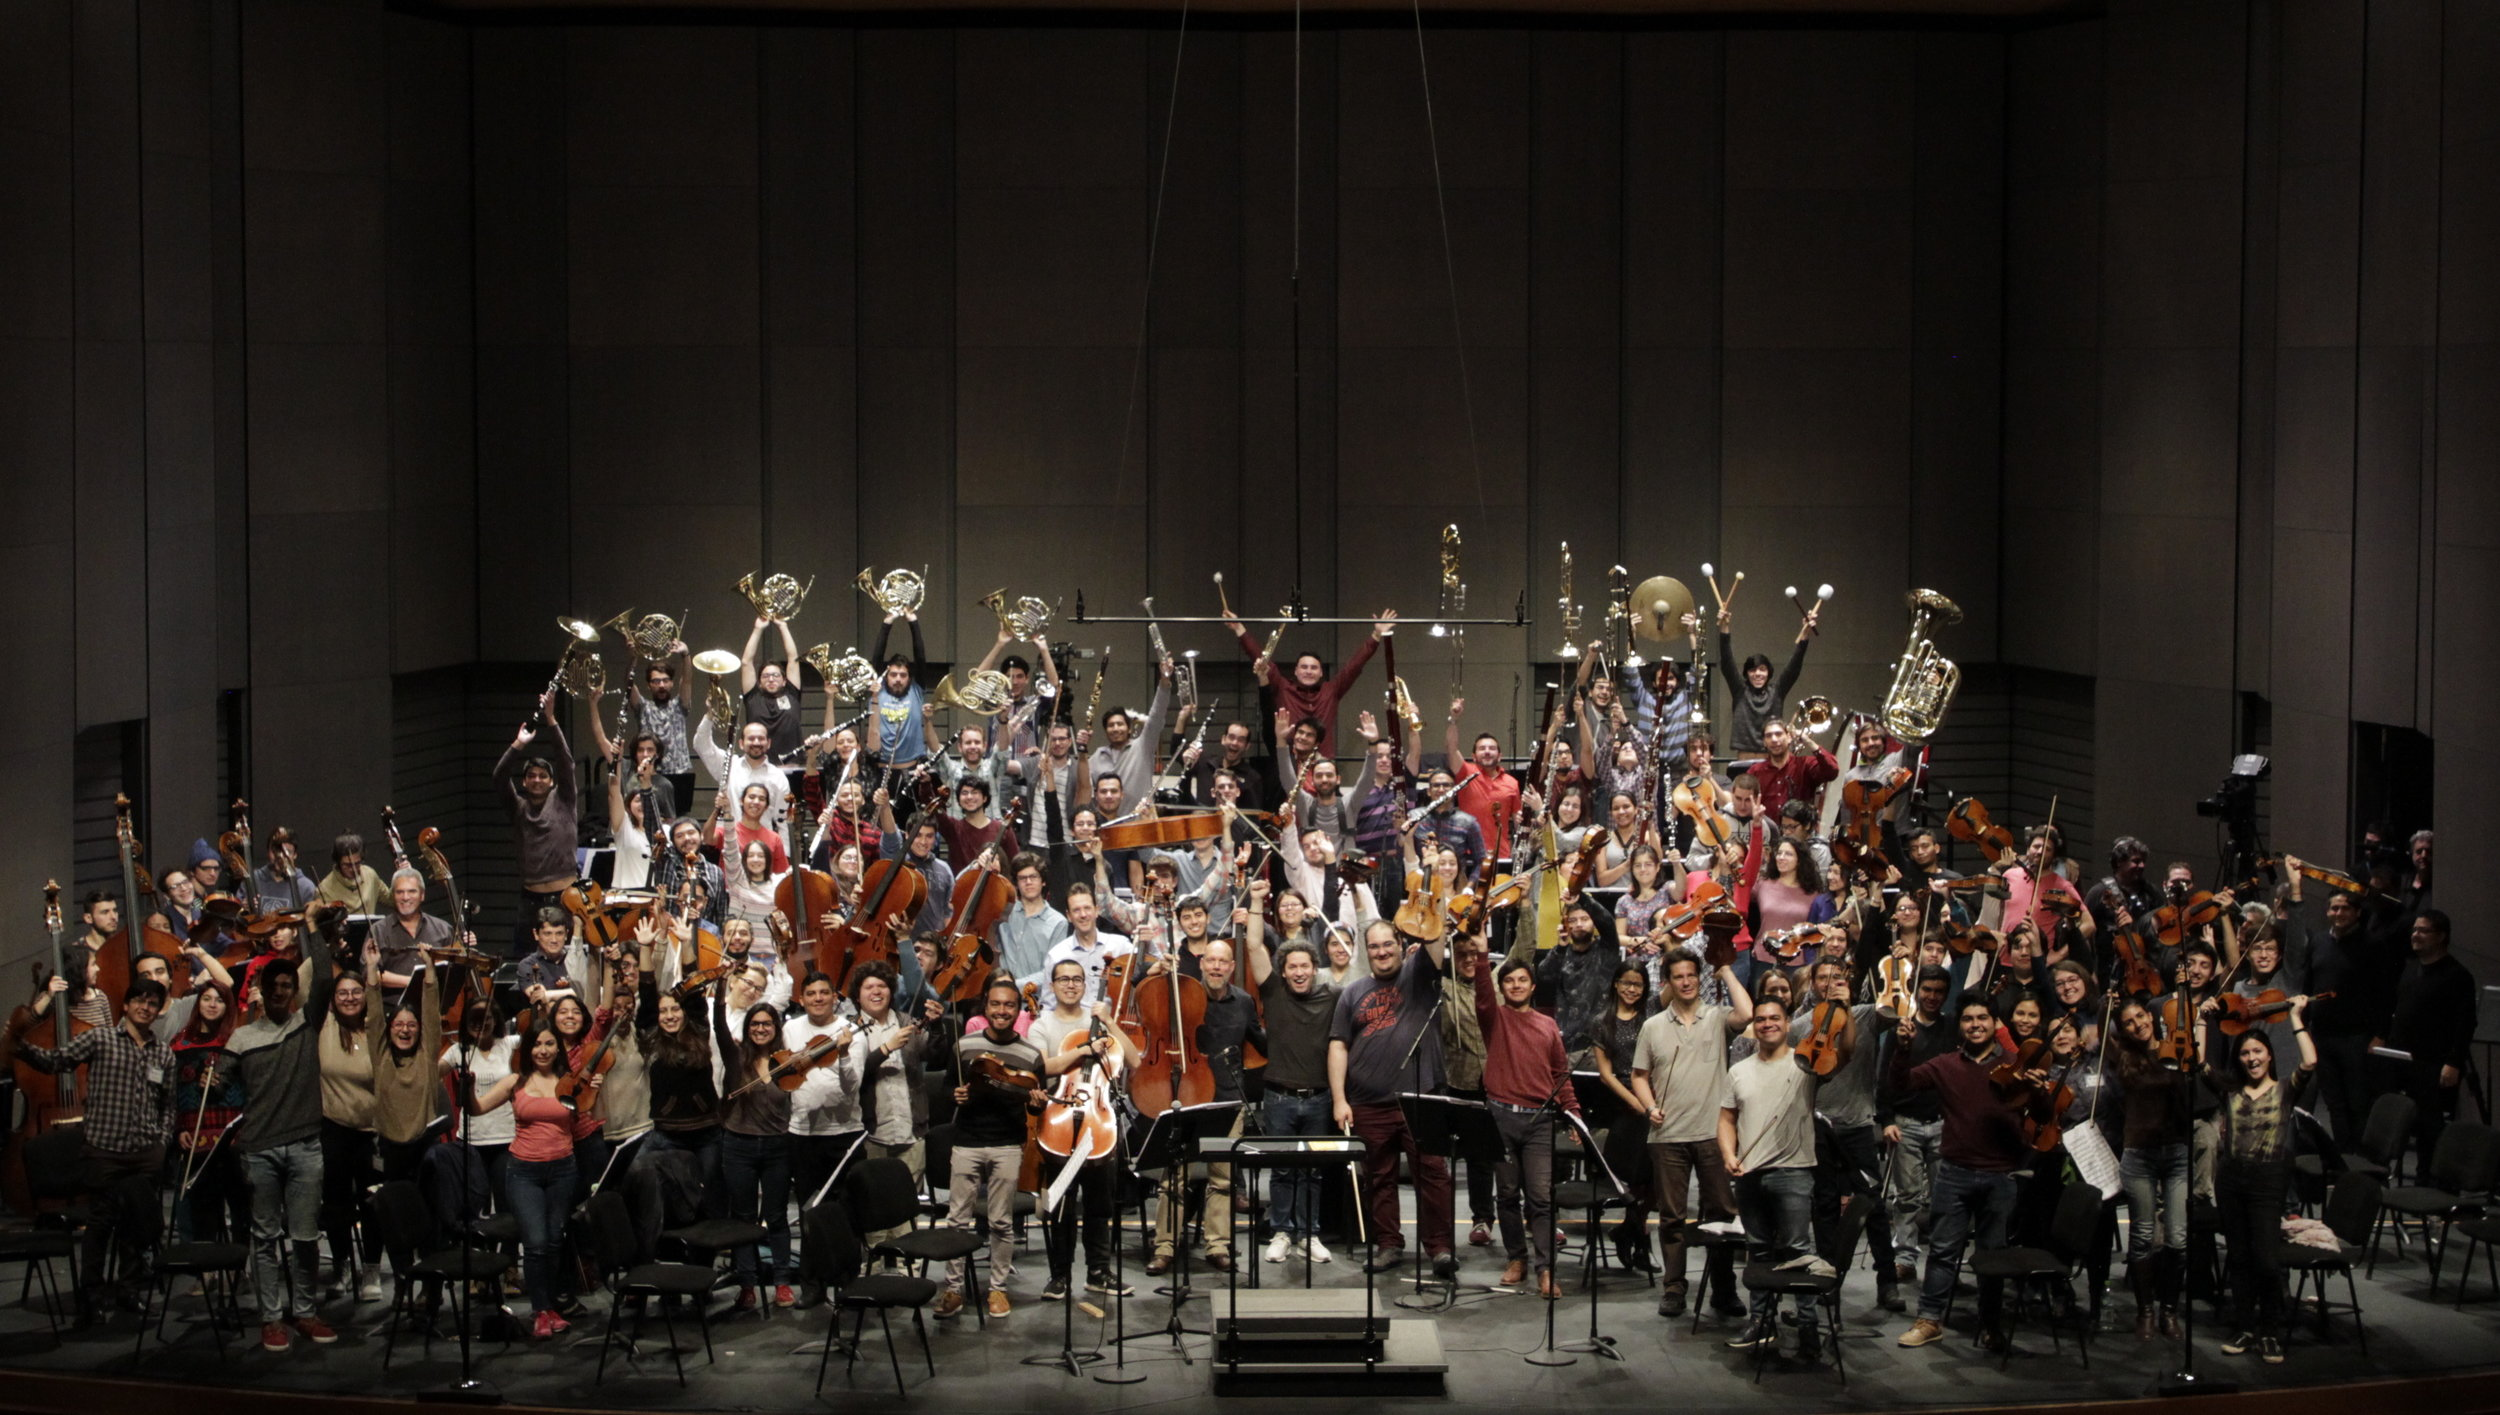 Maestro Gustavo Dudamel   and musicians of the National Youth Symphony Orchestra of Venezuela, Youth and Children's Orchestras Foundation of Chile (FOJI), Los Angeles Philharmonic, Vienna Philharmonic, Berlin Philharmonic, Gothenburg Symphony Orchestra, and Simon Bolivar Symphony Orchestra of Venezuela. Santiago, Chile. © 2018 The Gustavo Dudamel Foundation